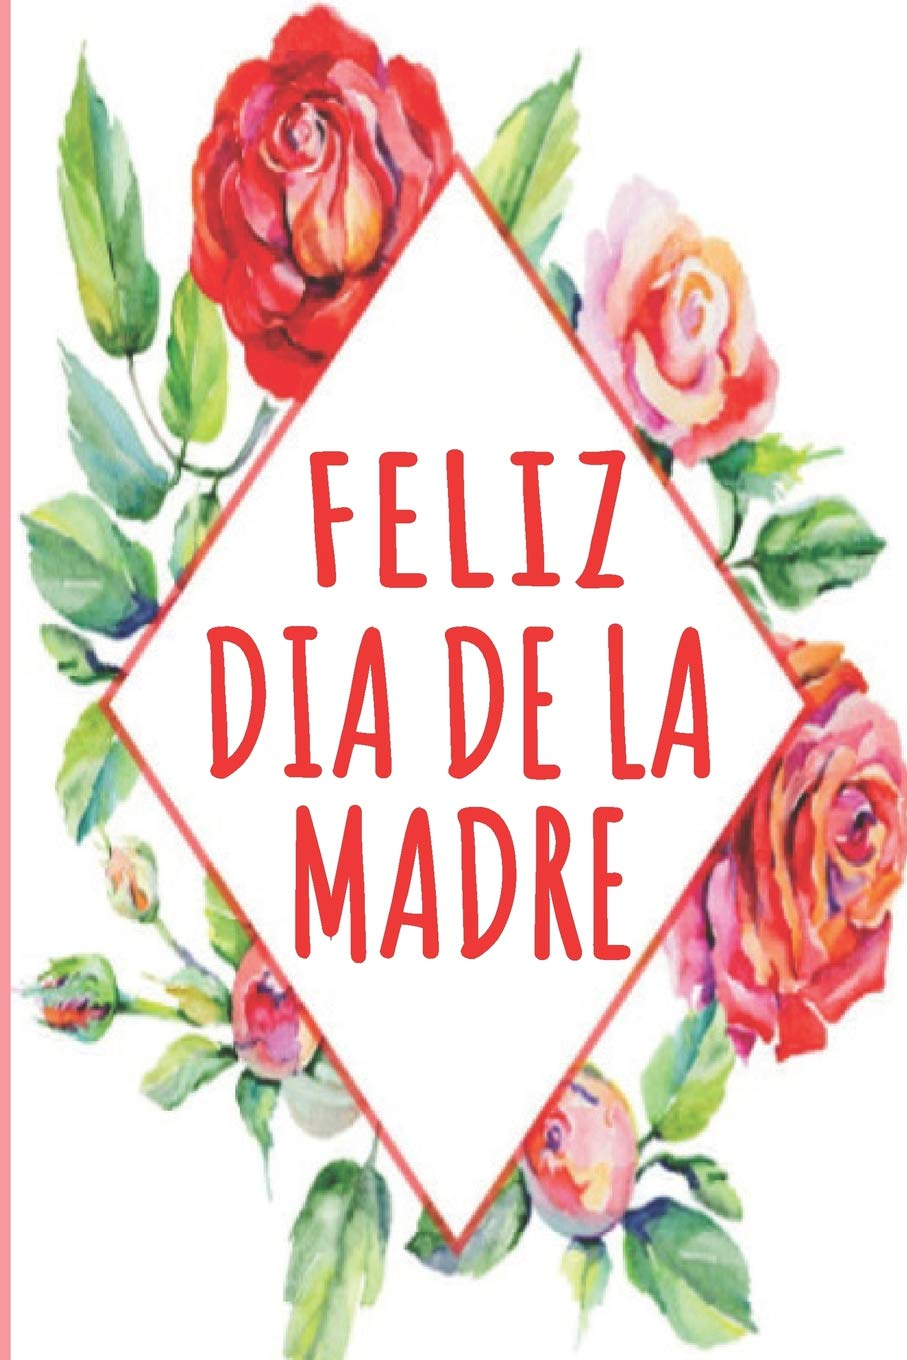 Feliz Dia De La Madre Spanish Happy Mothers Day Journal Notebook 6x9 Inch 120 Pages Blank Lined Journal Journal Momlife Notebook 9781093349801 Books